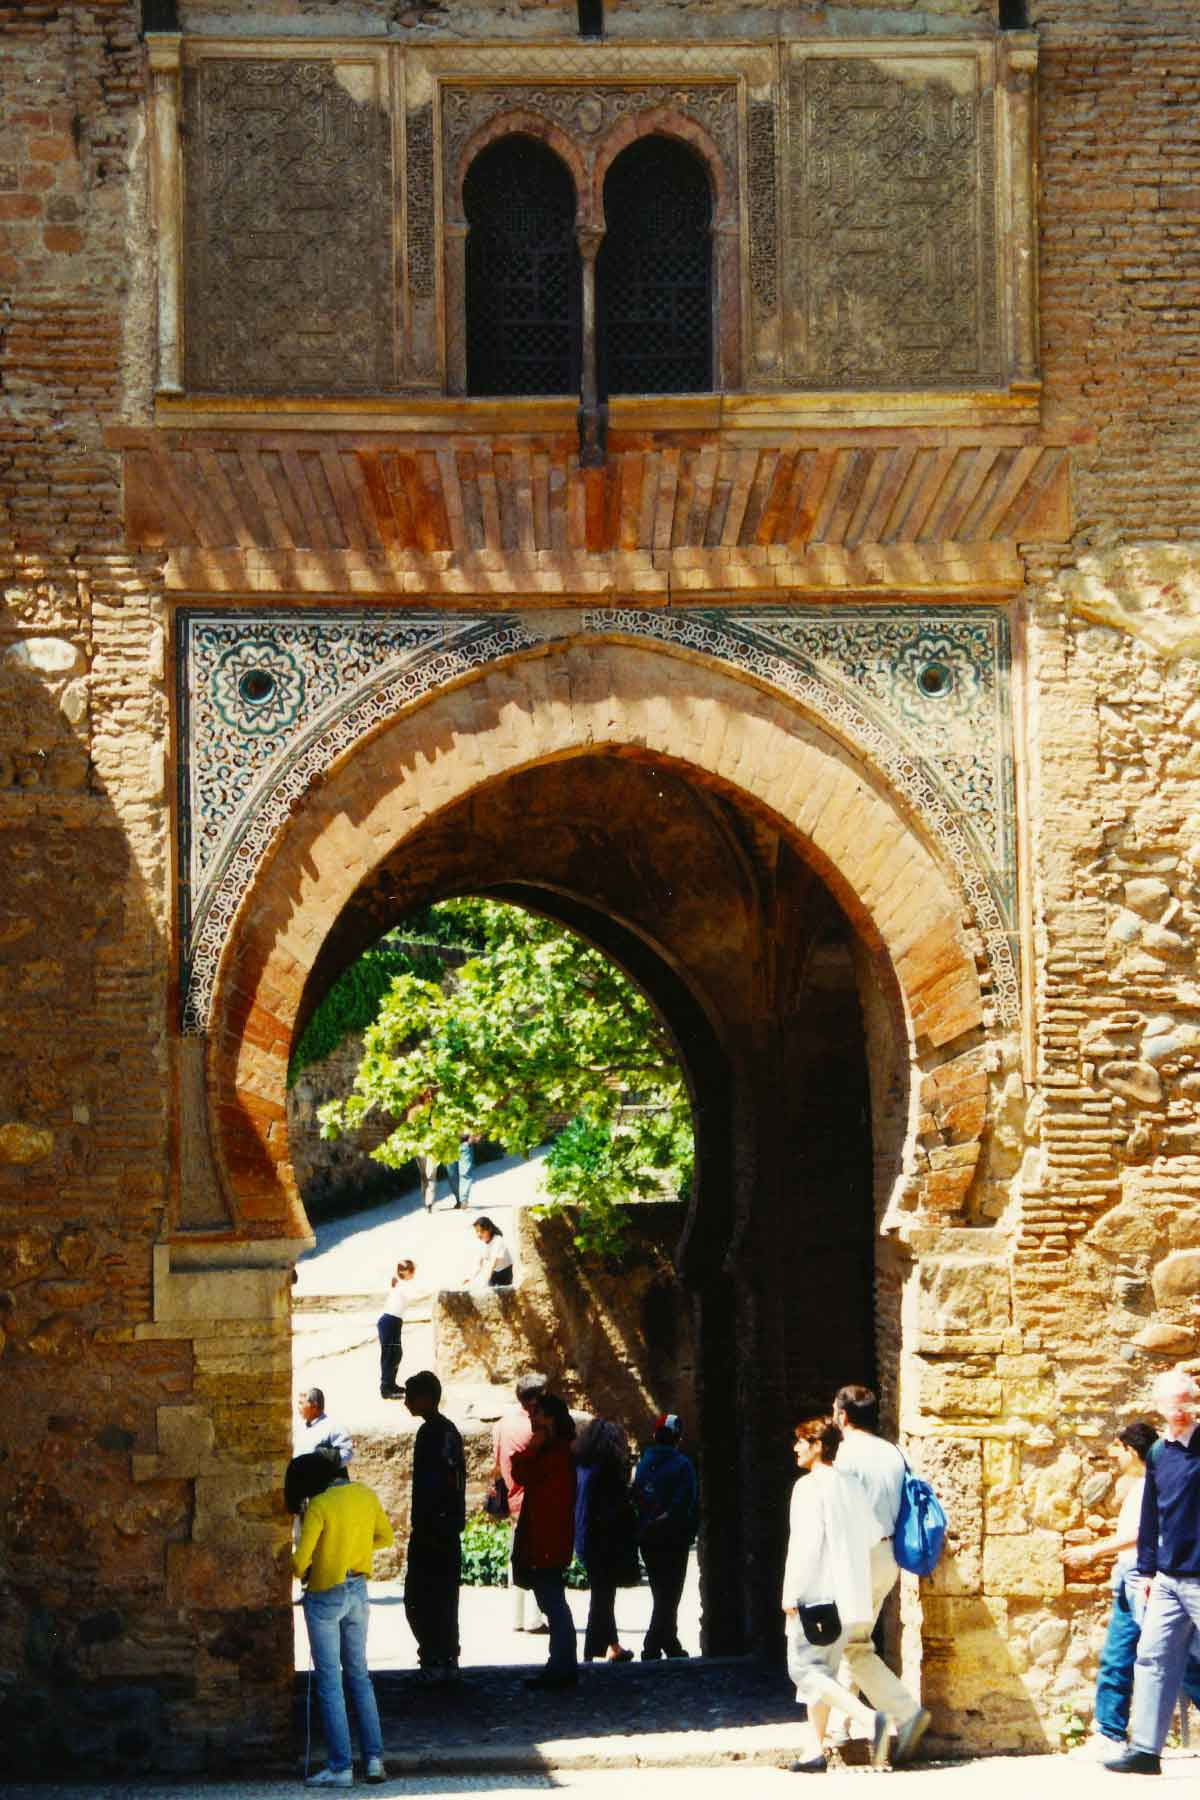 Alhambra - Spain Photo Journal - Steven Andrew Martin - Study Abroad 1998